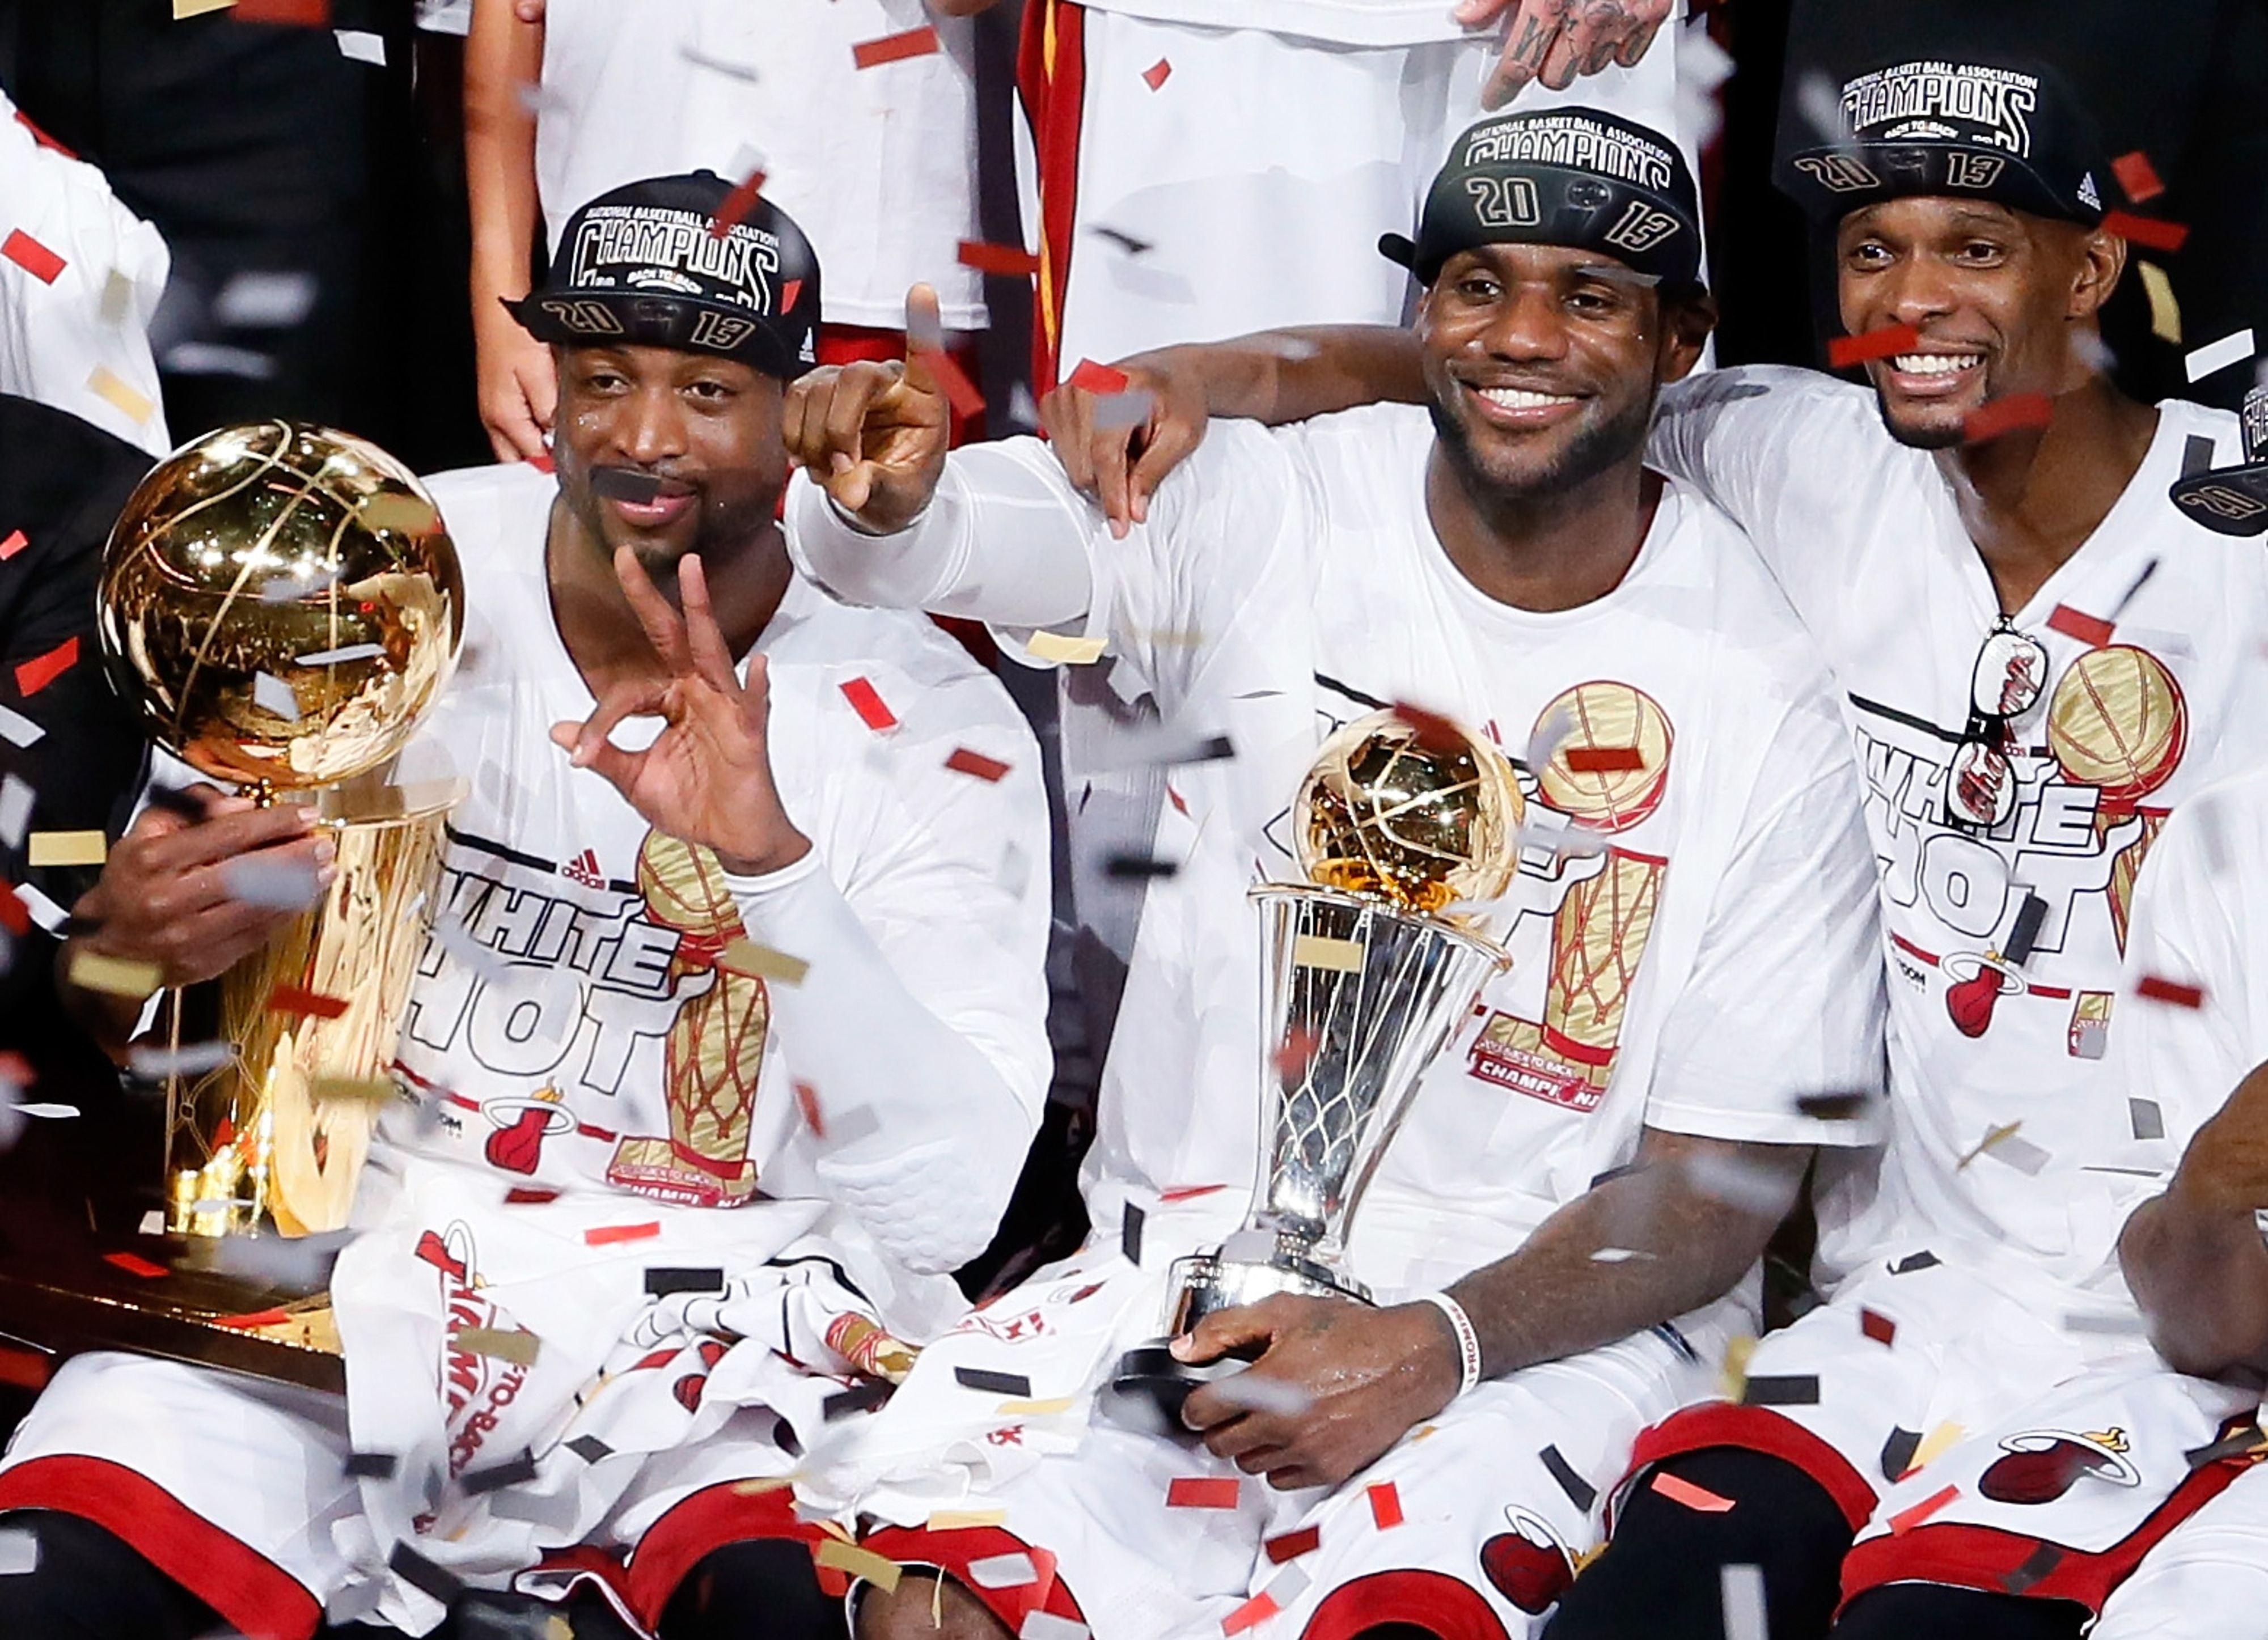 Dwyane Wade optimistic Big 3 will stay together past 2014